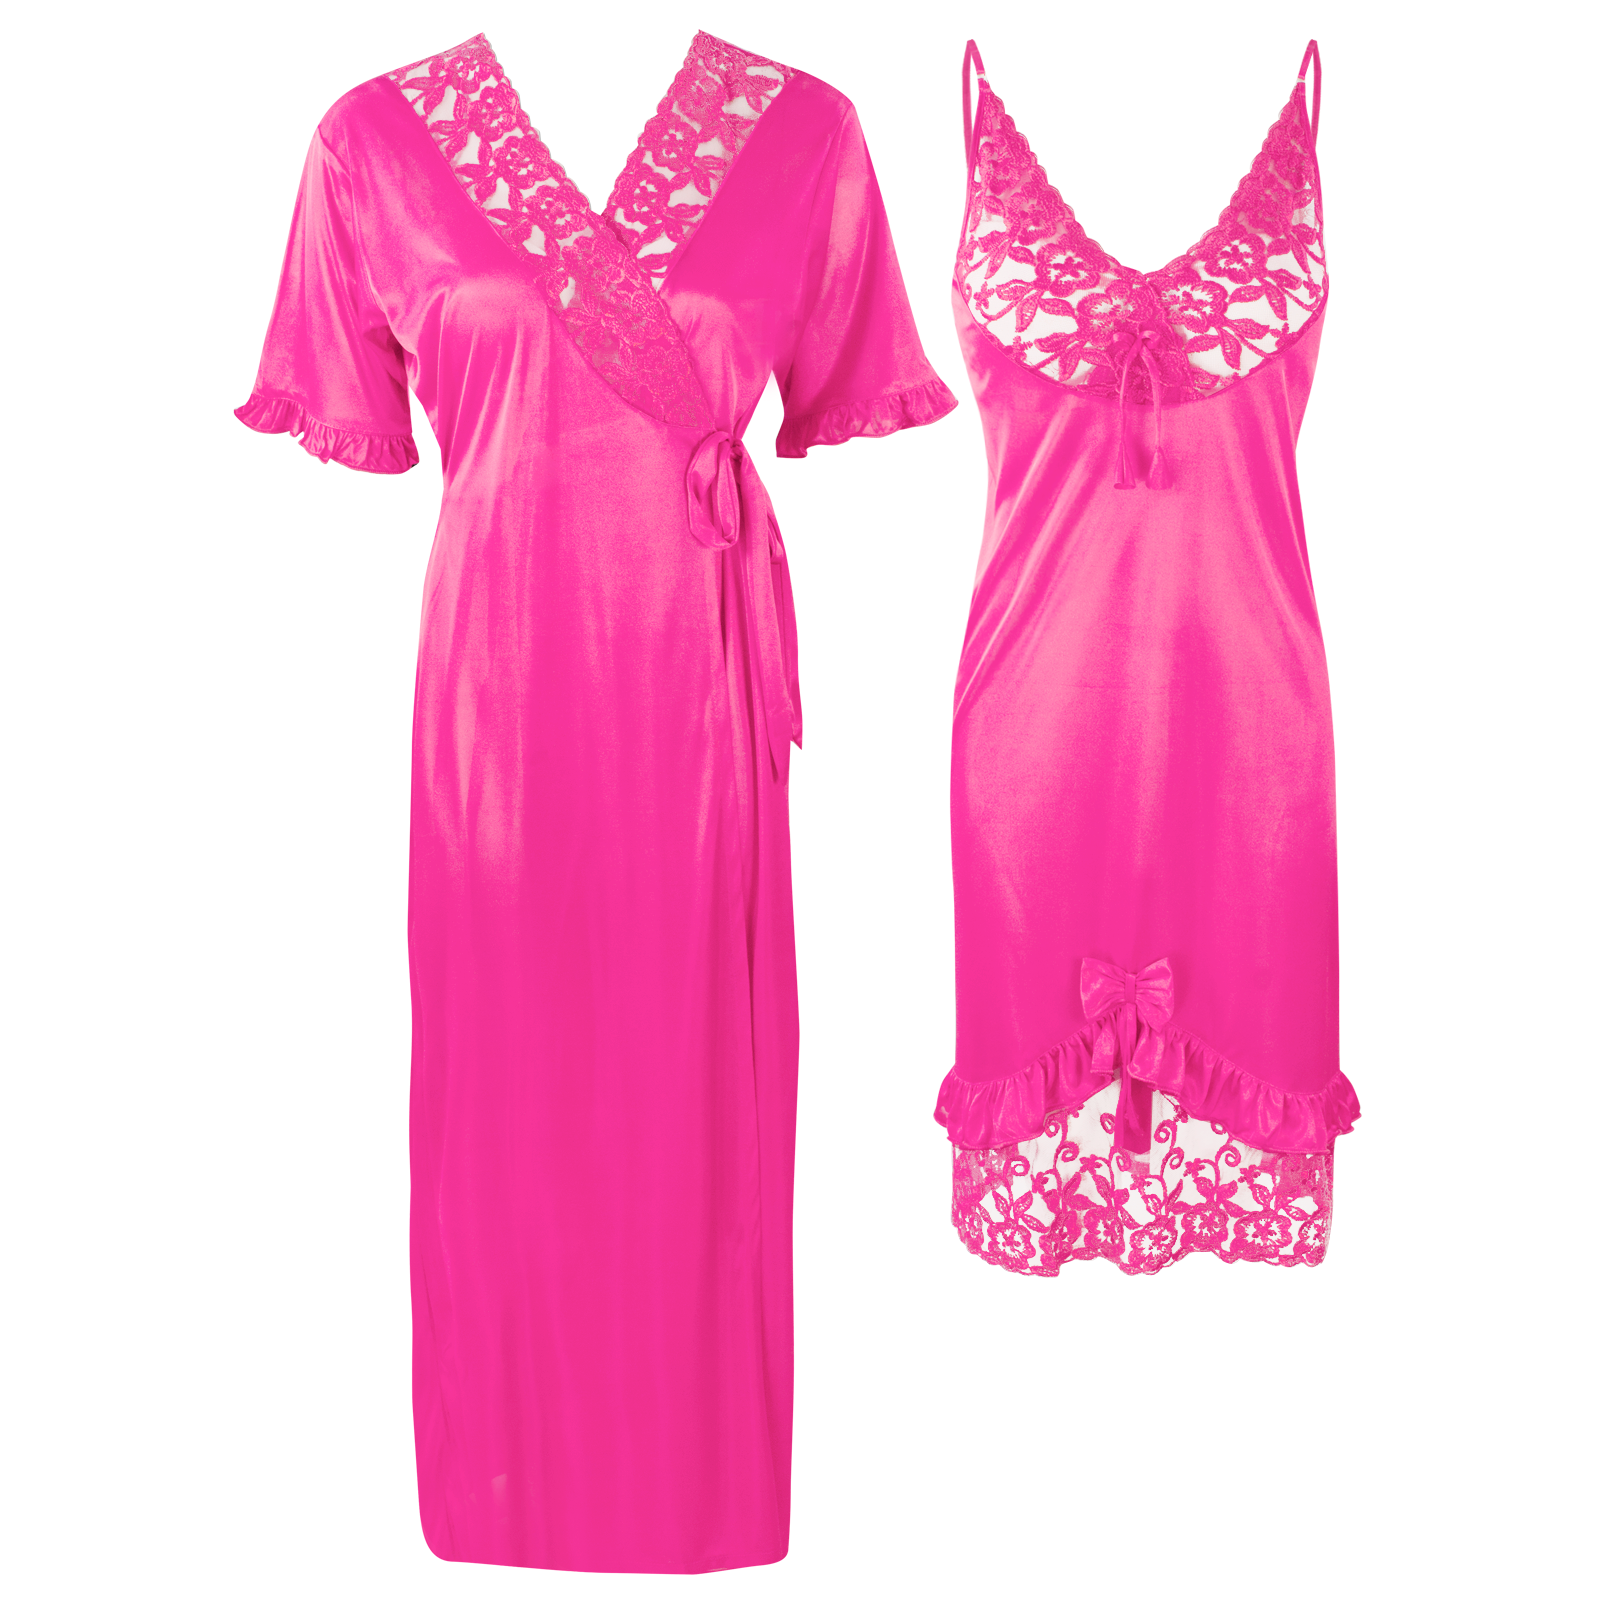 Colour: Rose pink 2Pcs Women Sexy Silk Satin Sleepwear Lingerie Nightie Nightdress Robe Pajamas UK Size: One Size